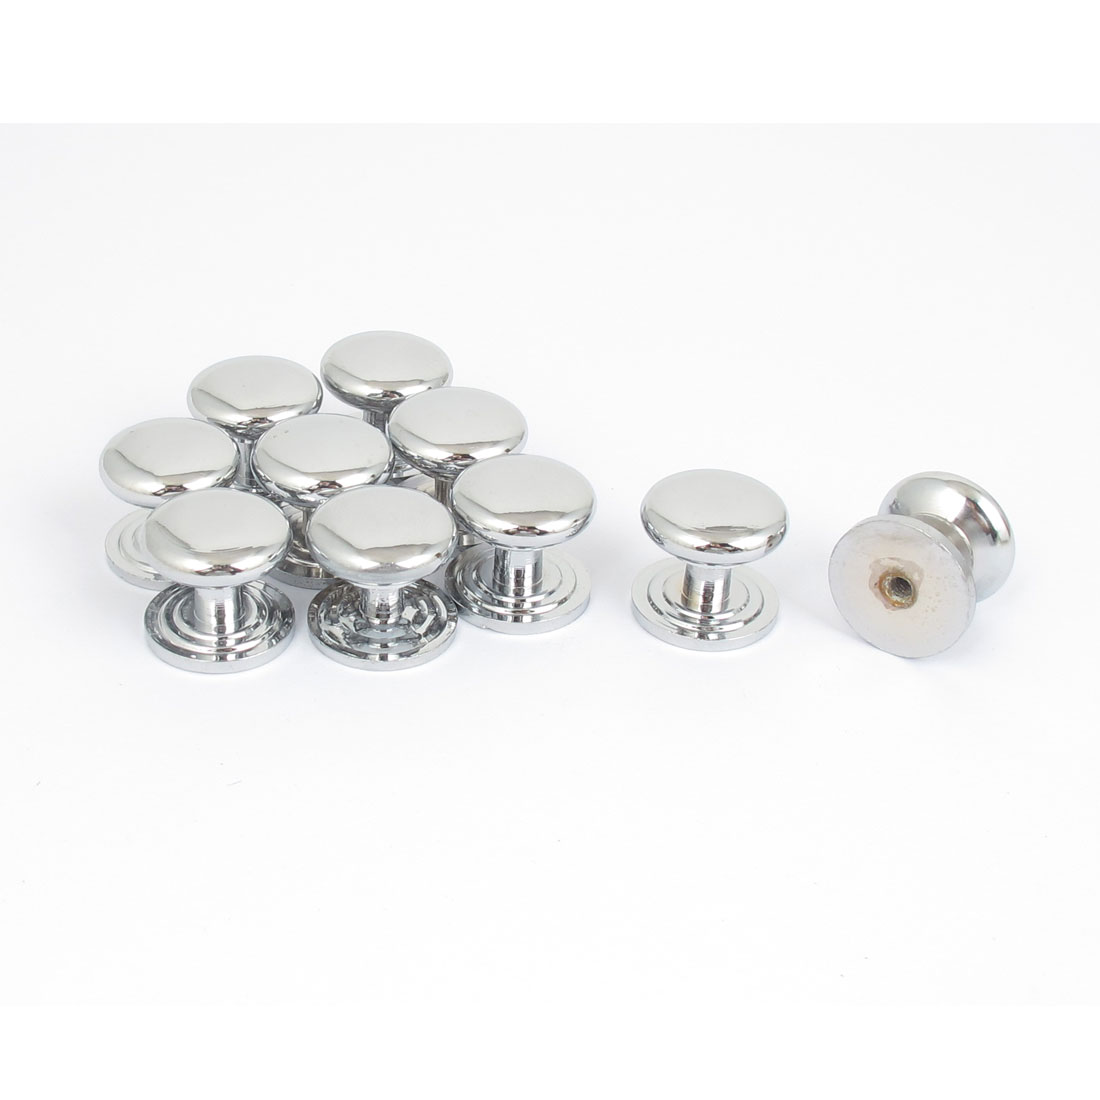 22mmx19mm Furniture Kitchen Cabinet Drawer Chrome Plated Pull Handle Knob 10pcs